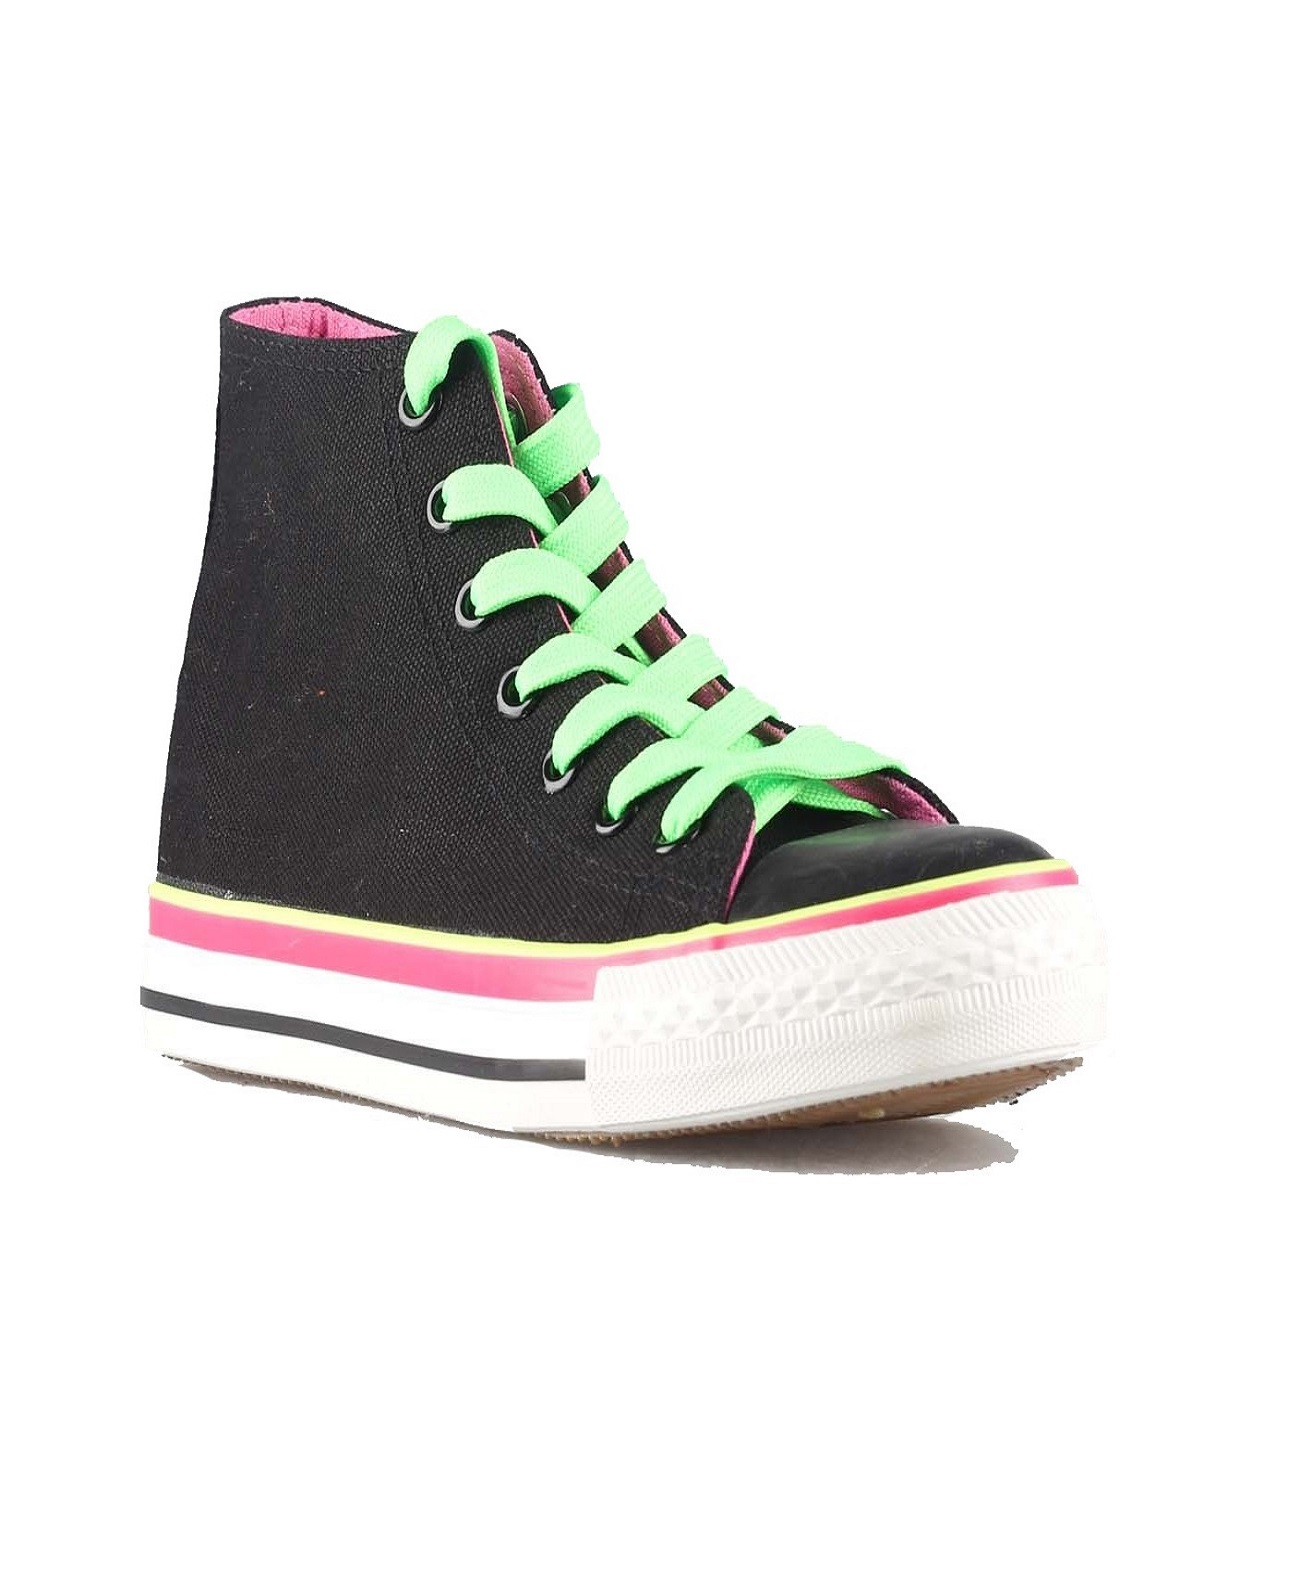 sneakers donna modello converse all star